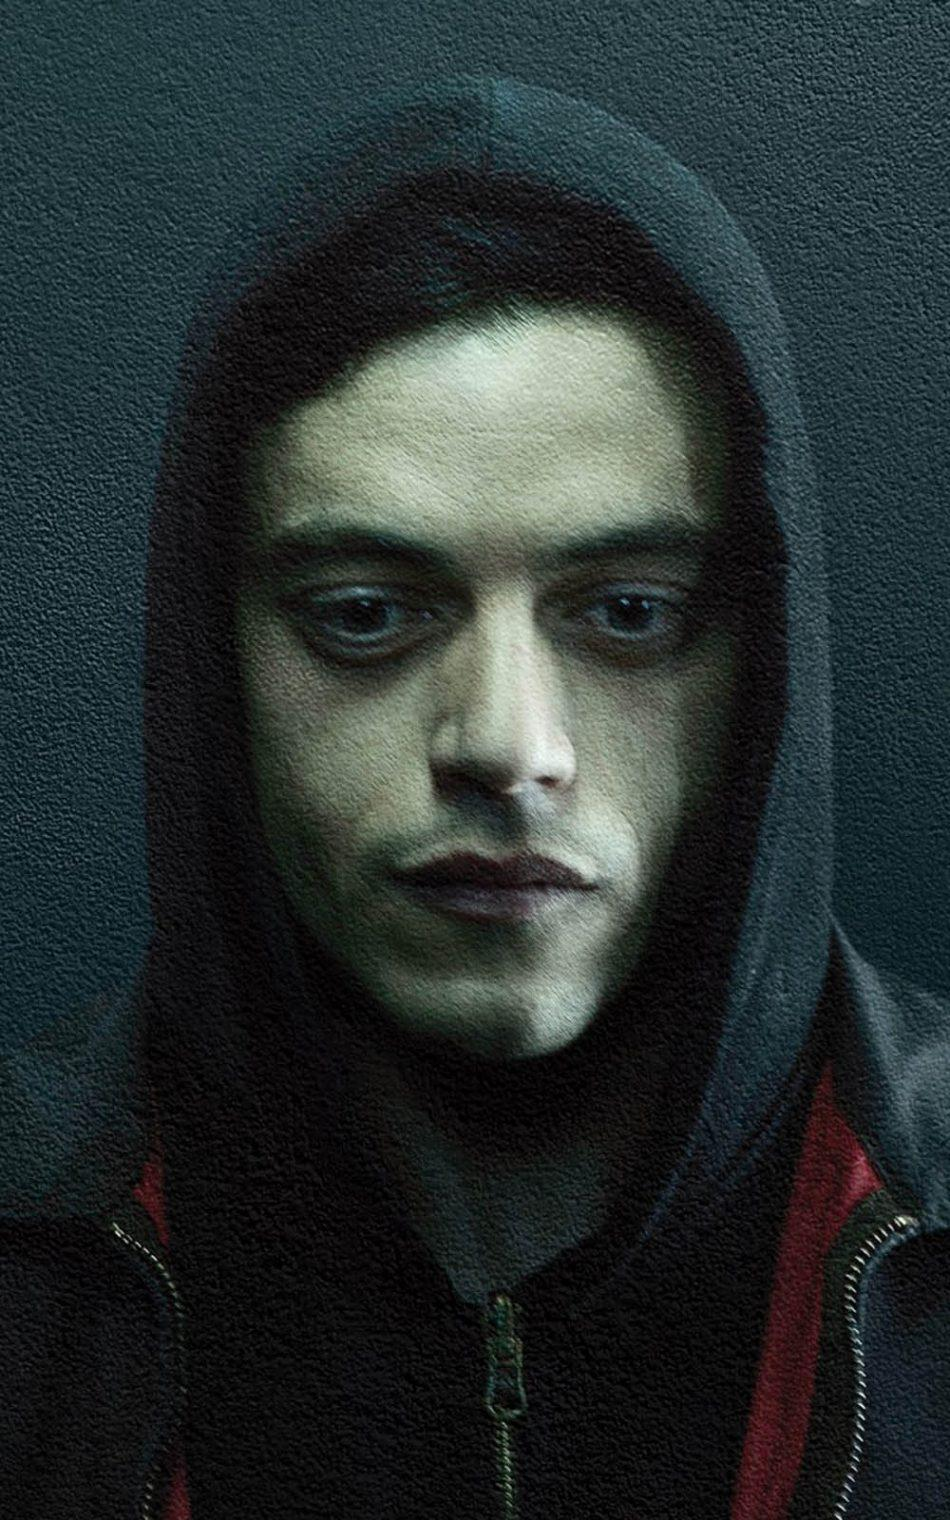 Download Rami Malek In Mr Robot Free Pure 4K Ultra HD Mobile Wallpapers